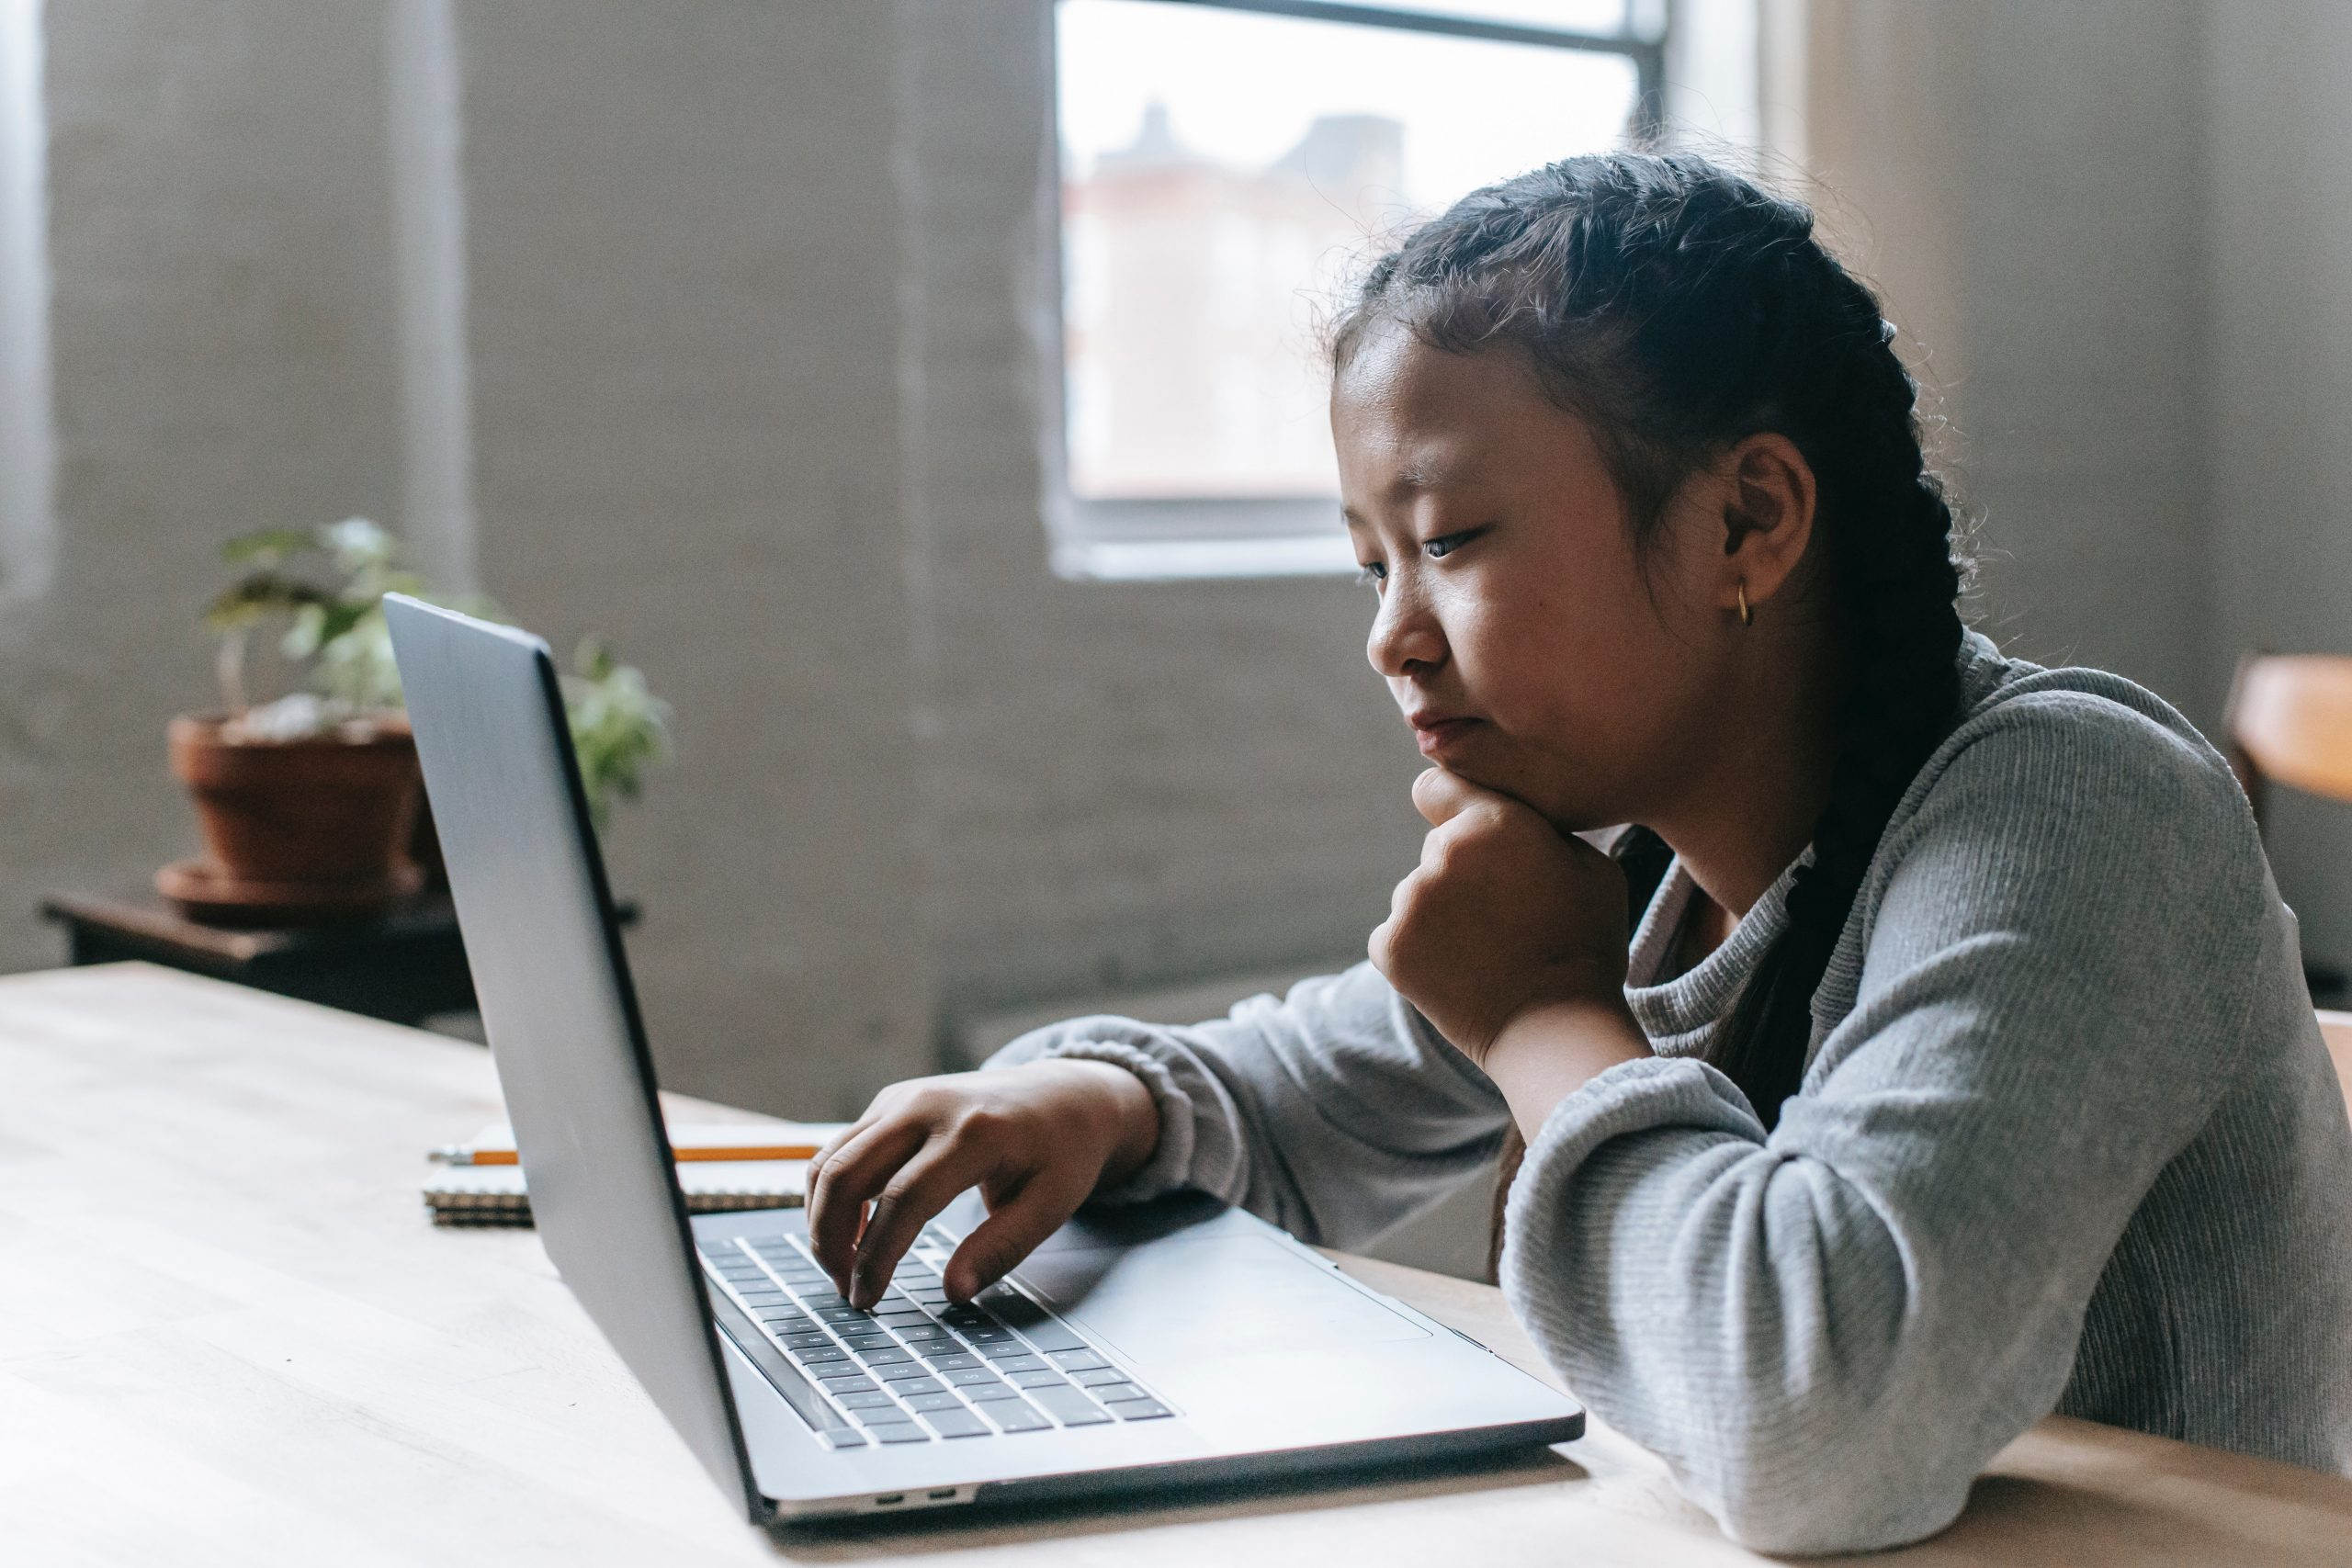 Child on a computer